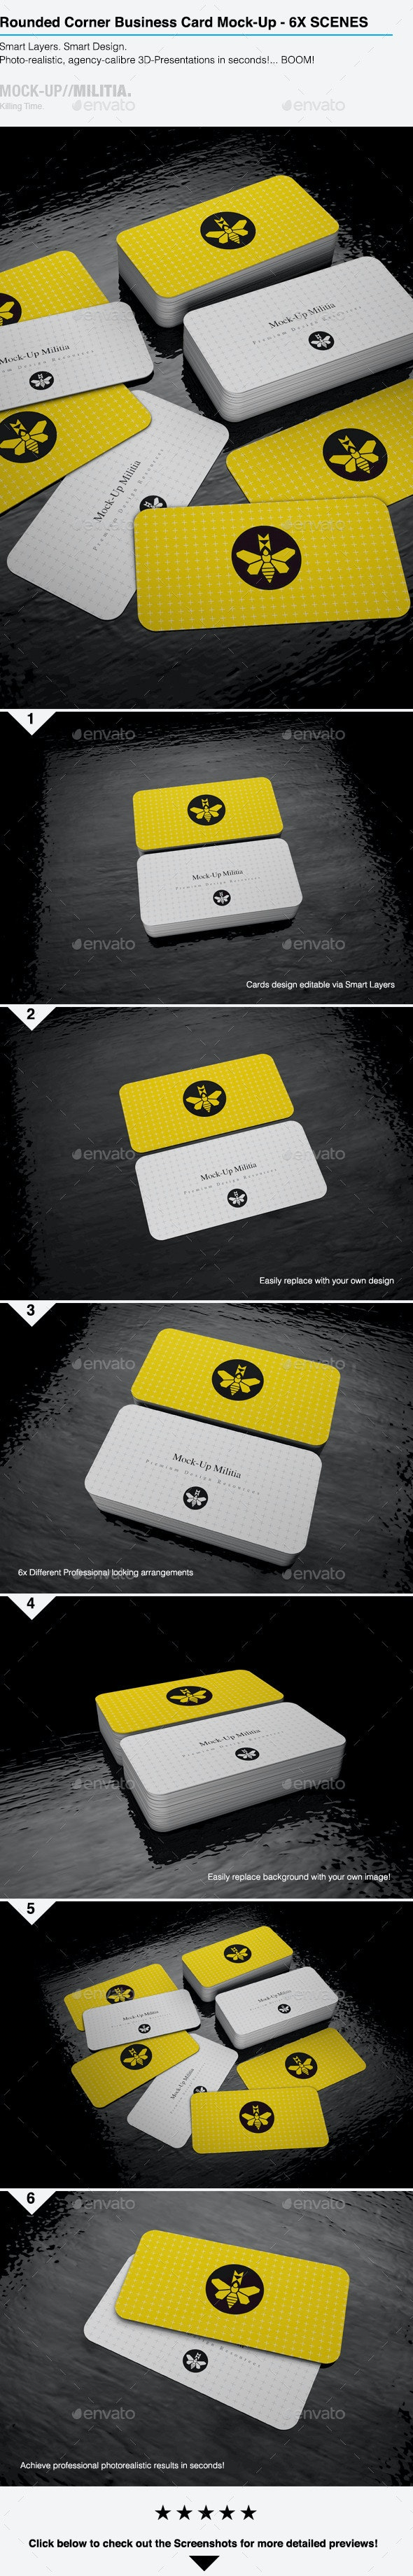 Rounded Corners Business Card Mock-Up | Stack V2  - Business Cards Print